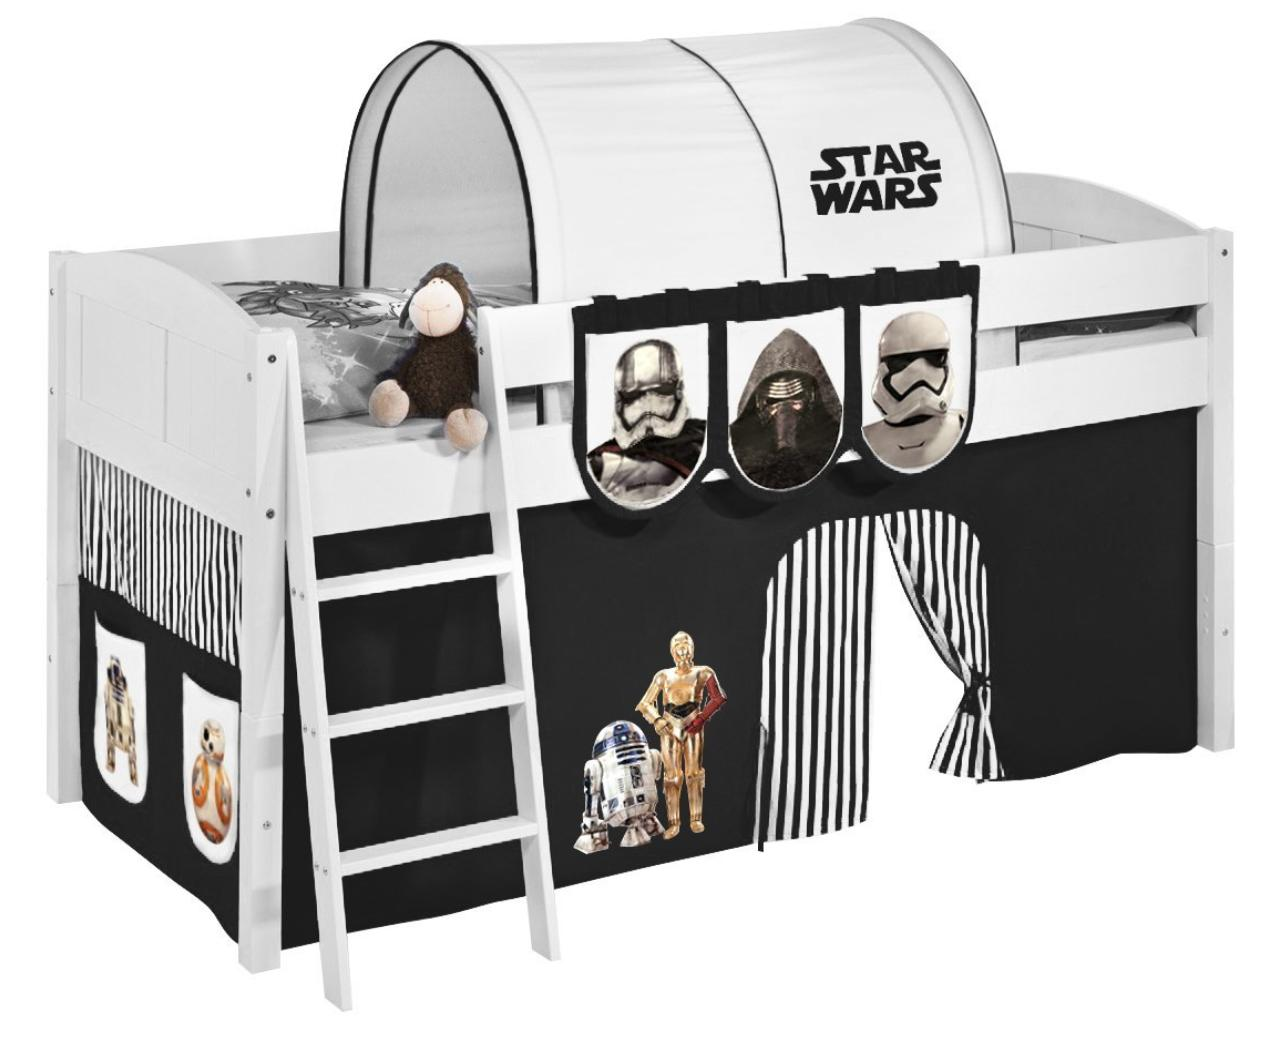 lit sur lev blanc rideau star wars noir 90x200cm sommier sans sommier sans matelas tunnel. Black Bedroom Furniture Sets. Home Design Ideas